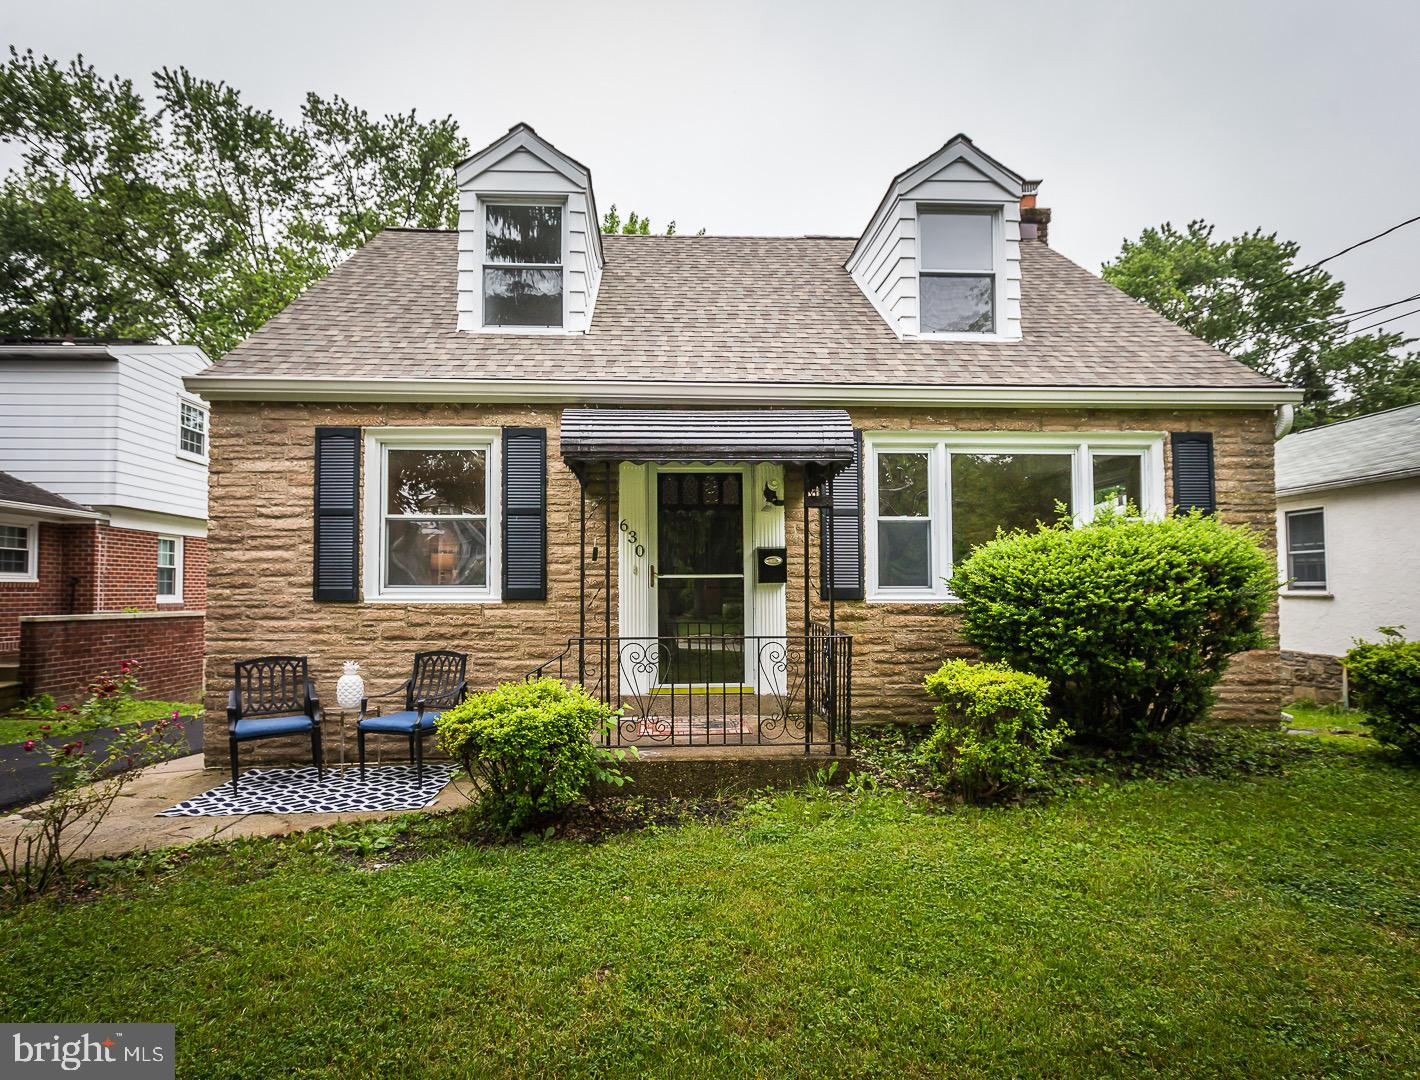 Come and see this bright and sunny cape in an excellent location. This beauty has 3 bedrooms, 1 on first floor 2 on second and a fully renovated bath on each floor. The newly renovated eat in kitchen has stainless steel appliances, new quartz counter tops and a tile backsplash.Refinished hardwood floors throughout the first floor. Finished basement with a bar, new carpets in basemrent and throughout the second floor. Oil heat and new central air.A brand new Private driveway. Large level yard with storage shed, and freshly poured concrete patio. Award winning Springfield schools. Convenient to Golf Course, Shopping Centers, public transportation, restaurants. Easy access to all major highways.